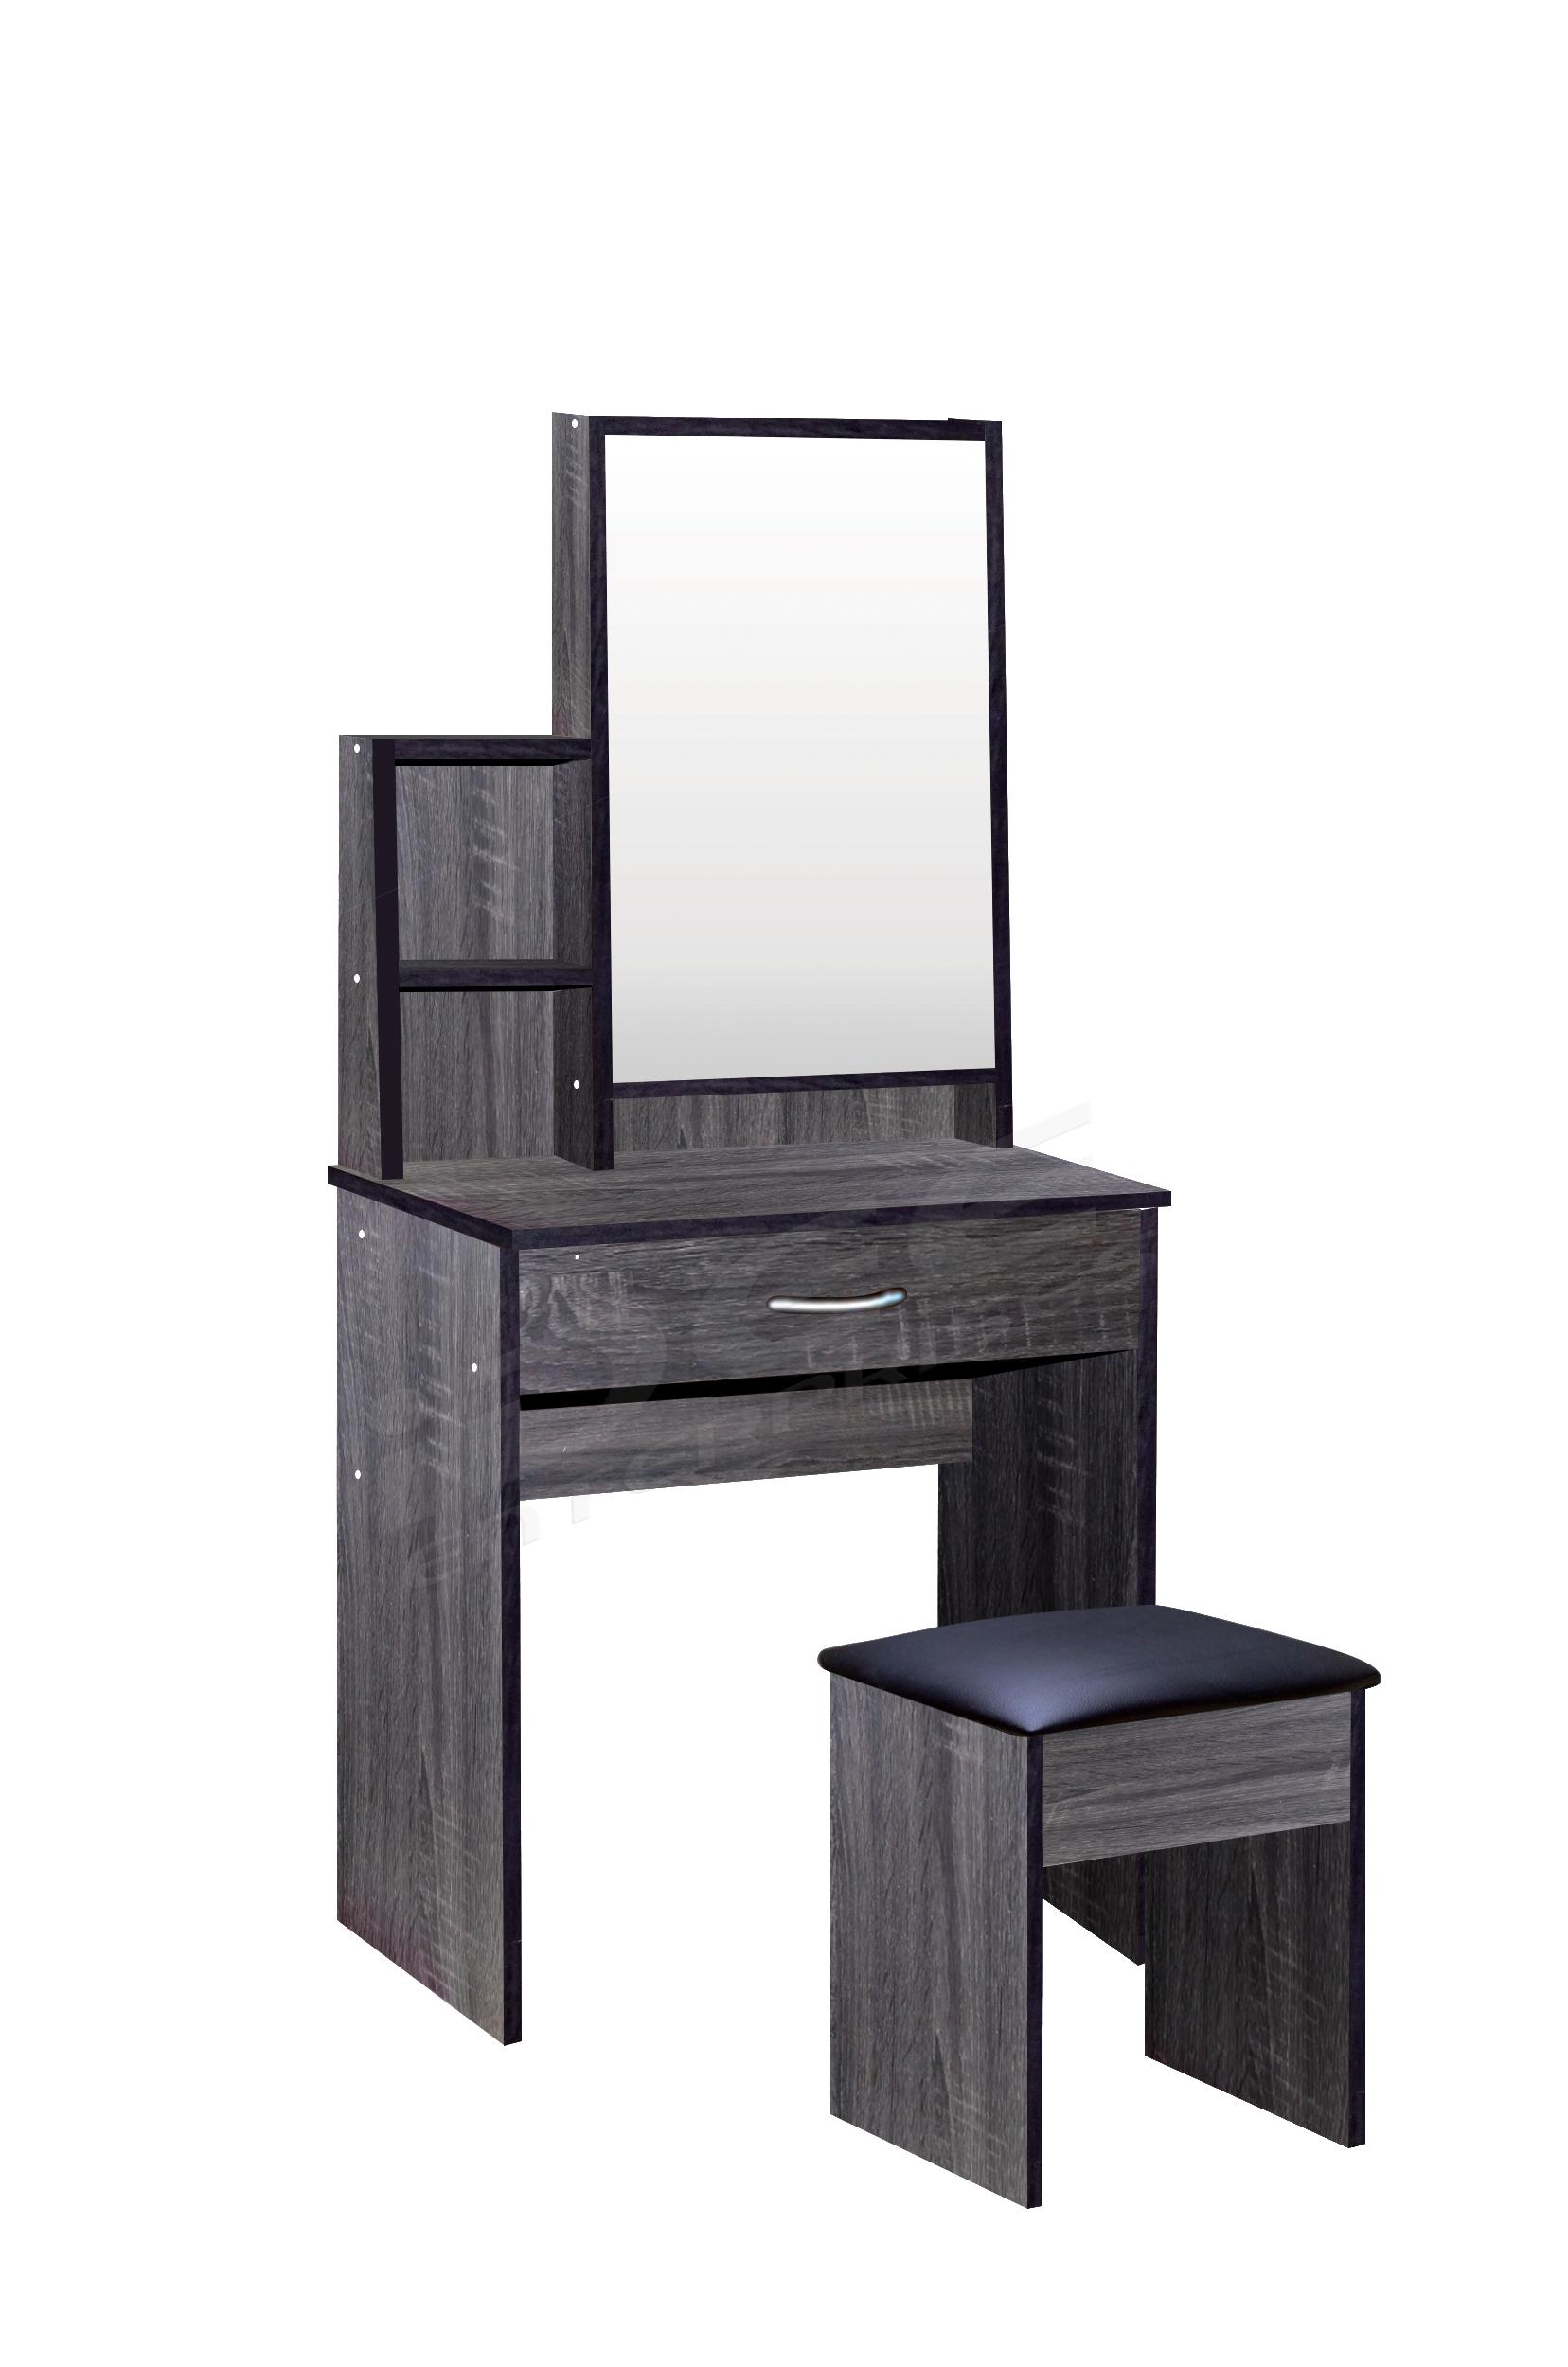 Furniture For Sale – Furnitures Prices, Brands & Review In Within Dixon White 84 Inch Tv Stands (View 15 of 30)